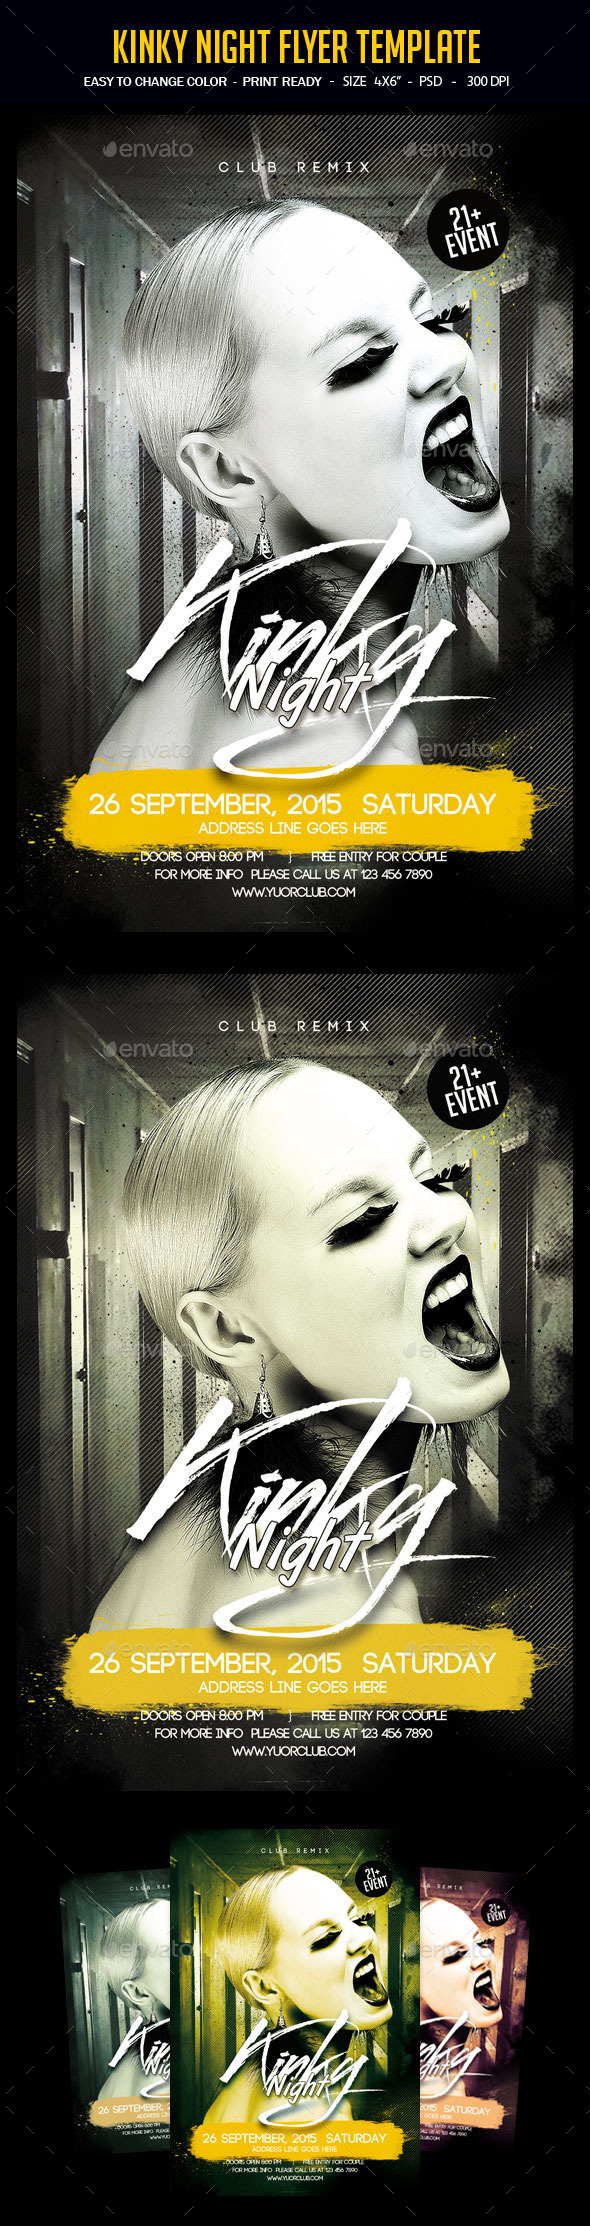 Kinky Night Flyer Template - Clubs & Parties Events